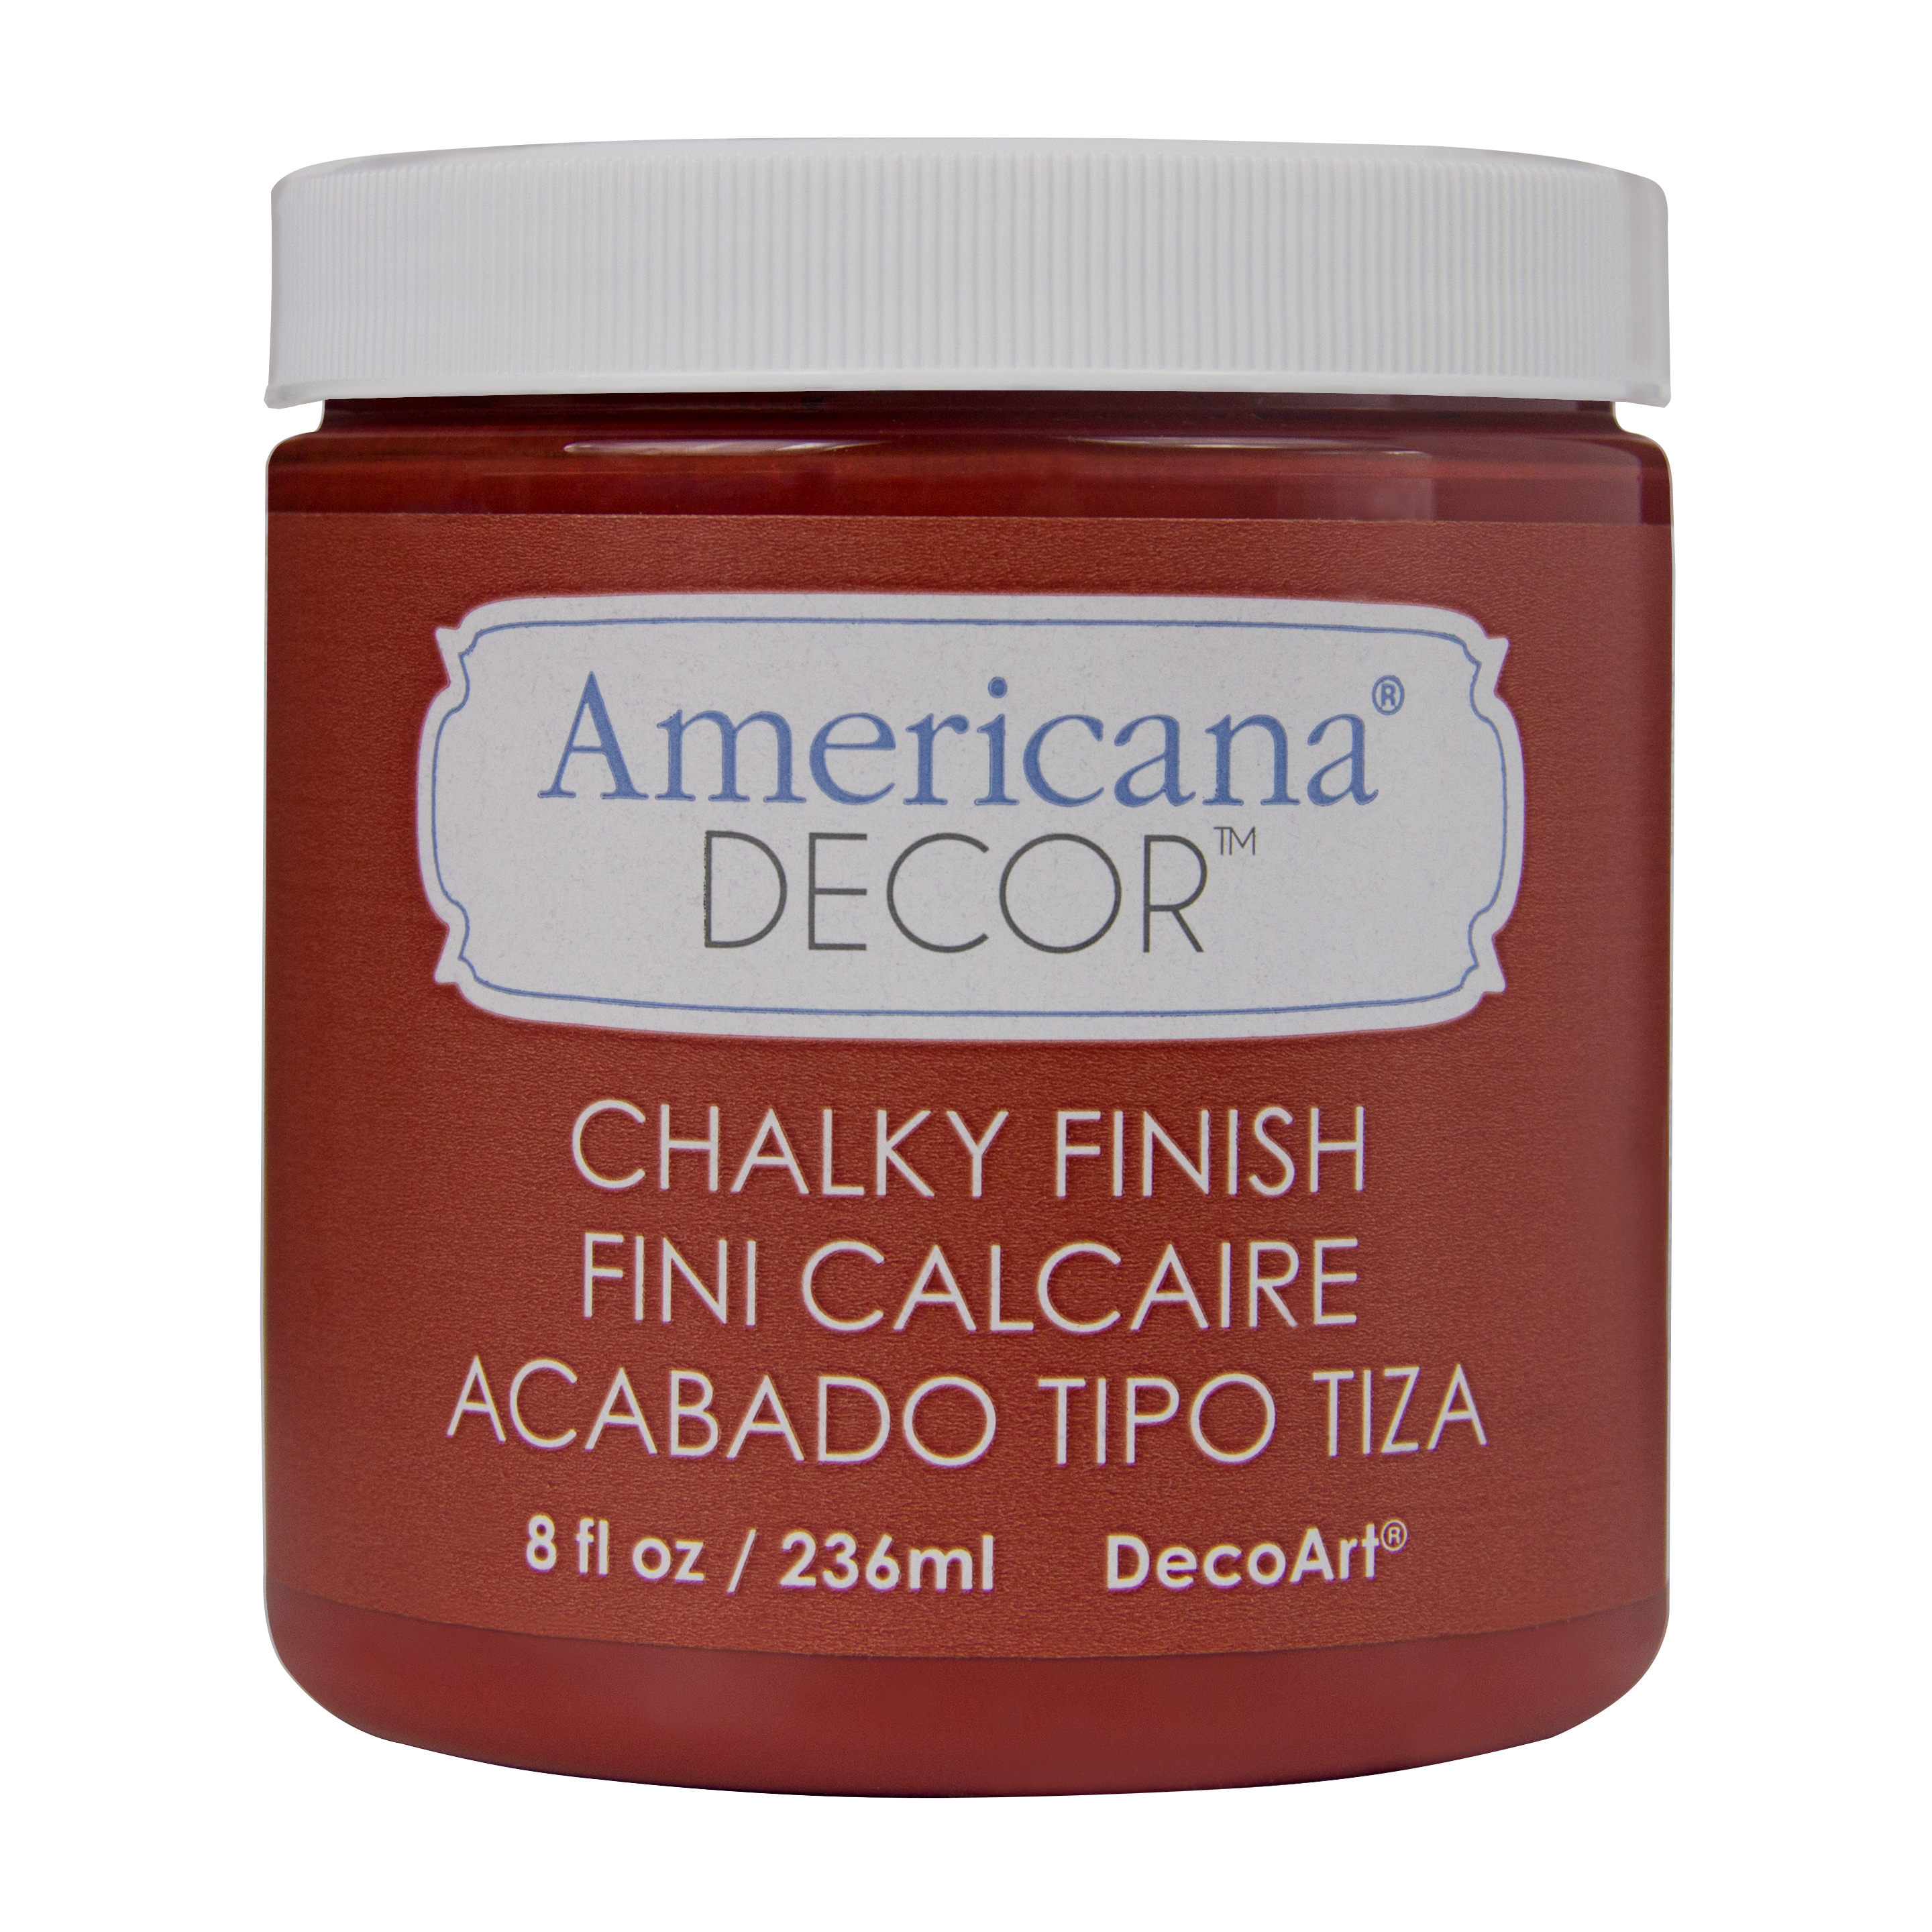 CAMEO CHALKY FINISH 236ml AMERICANA DECOR